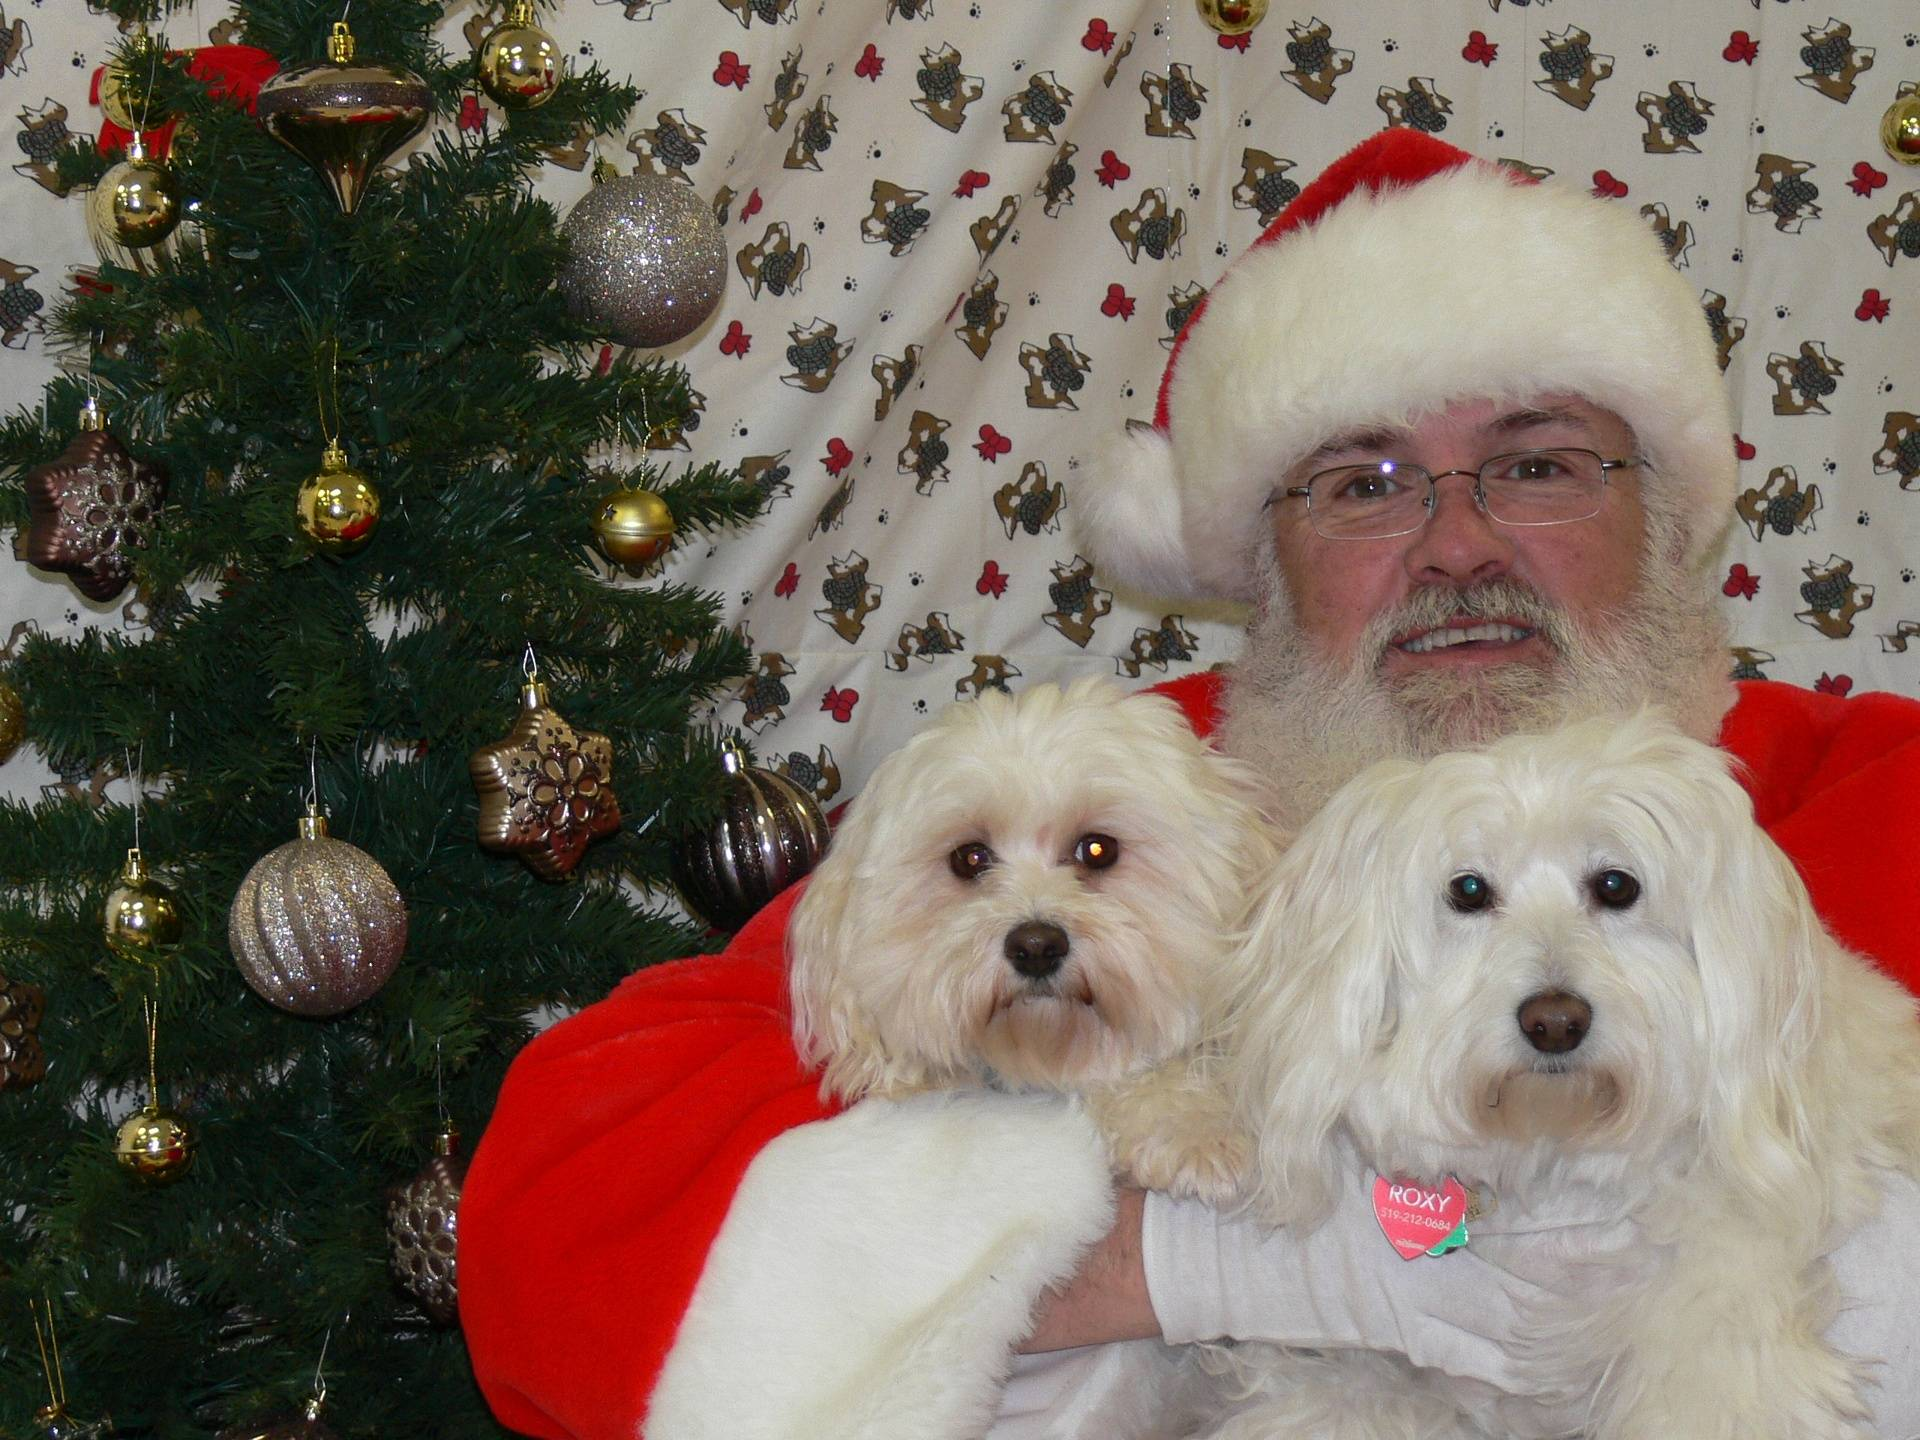 Roxy, Abby and Santa